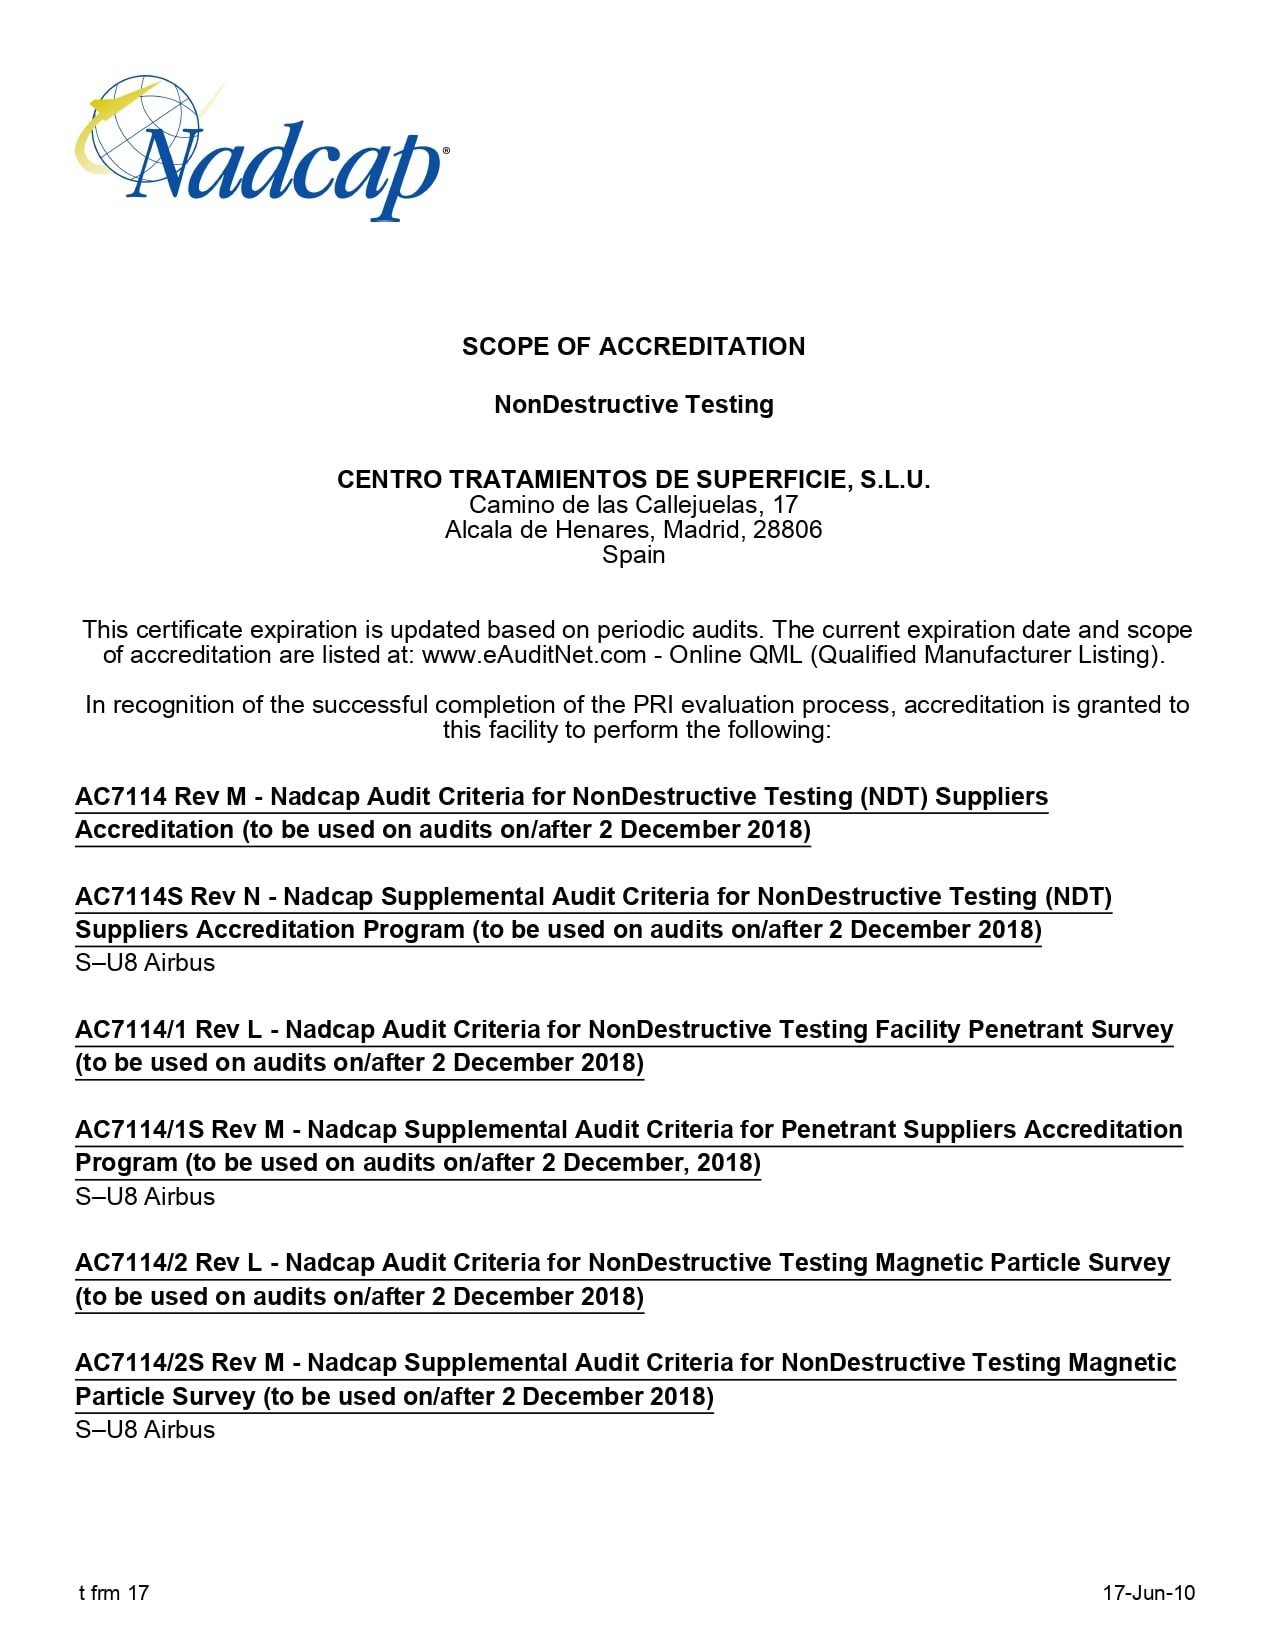 NonDestructive Testing audit 189930 ScopeOfAccreditation